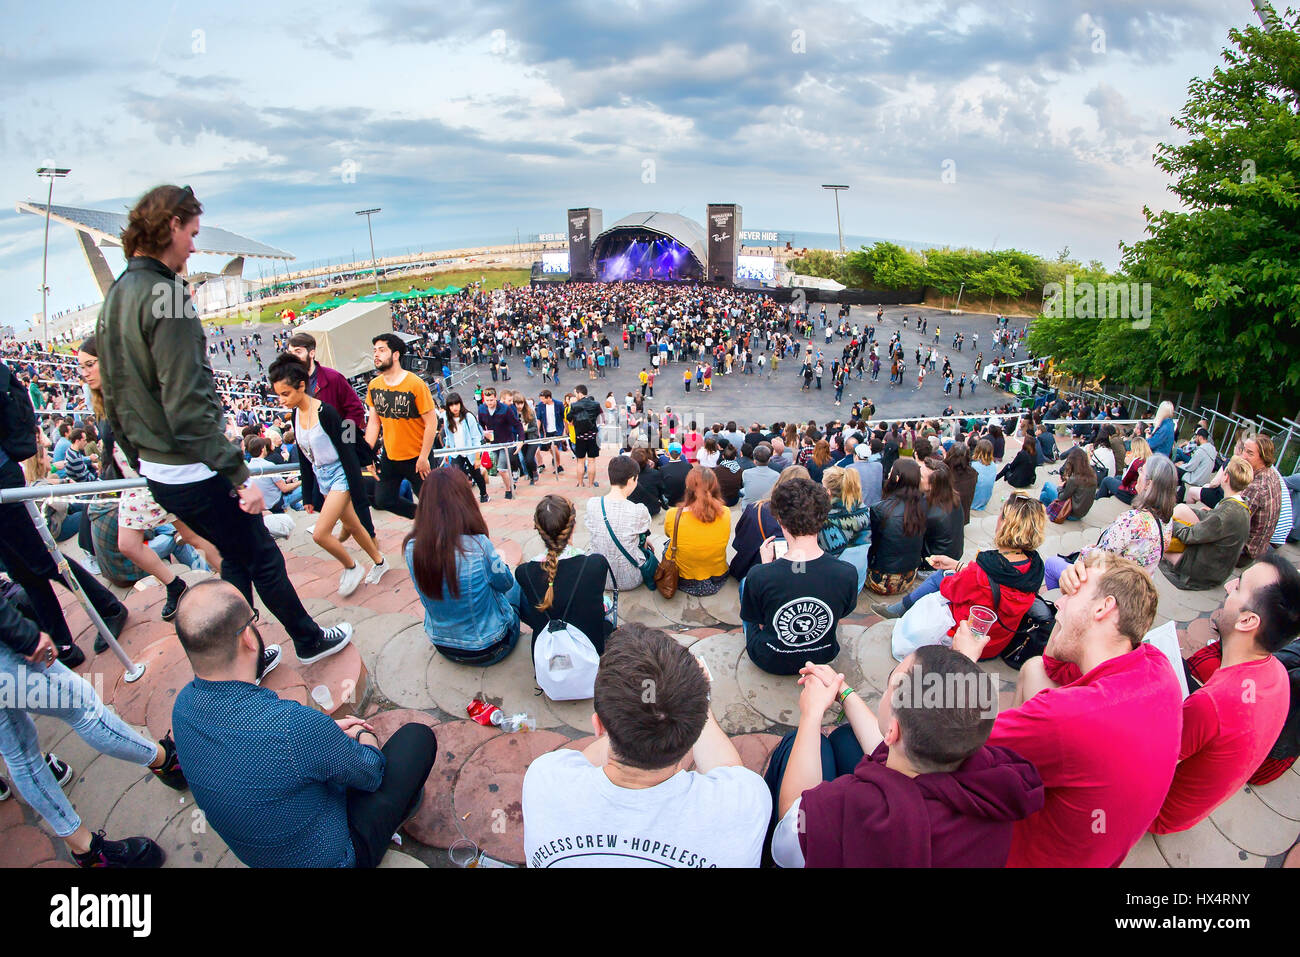 BARCELONA - MAY 29: People at Primavera Sound 2015 Festival on May 29, 2015 in Barcelona, Spain. - Stock Image